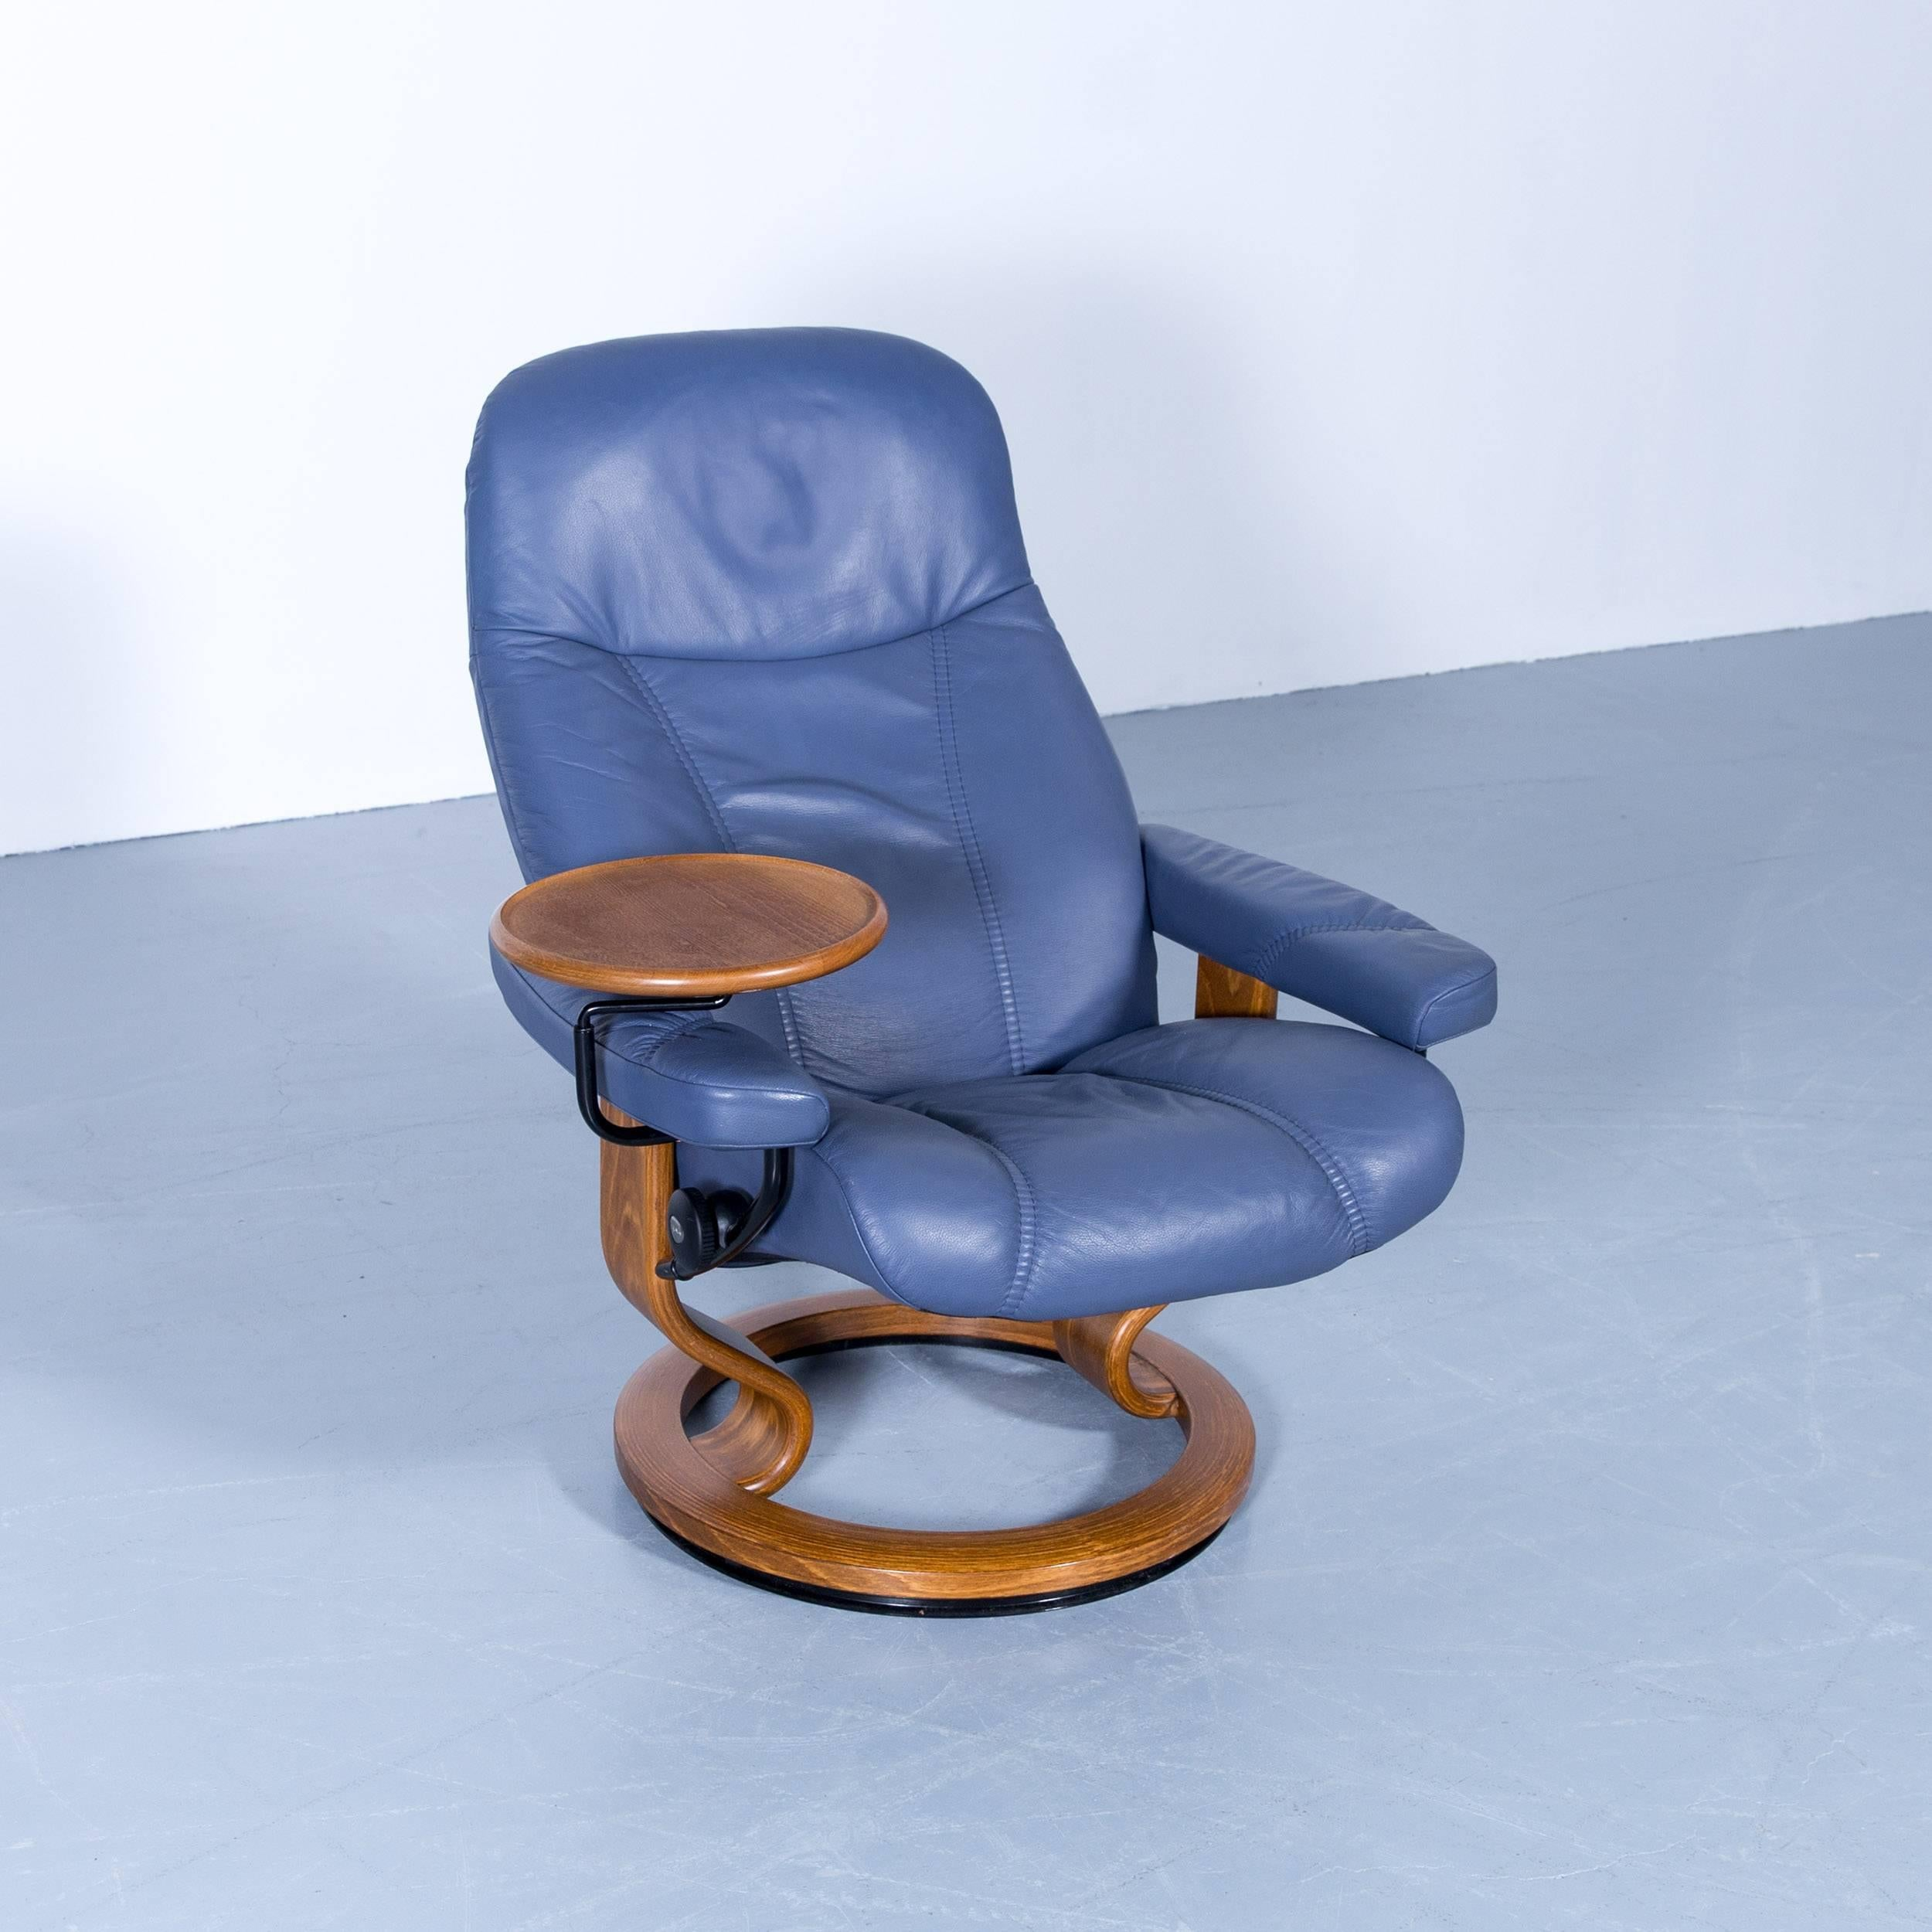 Contemporary Stressless Consul Relax Armchair Light Blue Leather Relax  Function TV Recliner For Sale